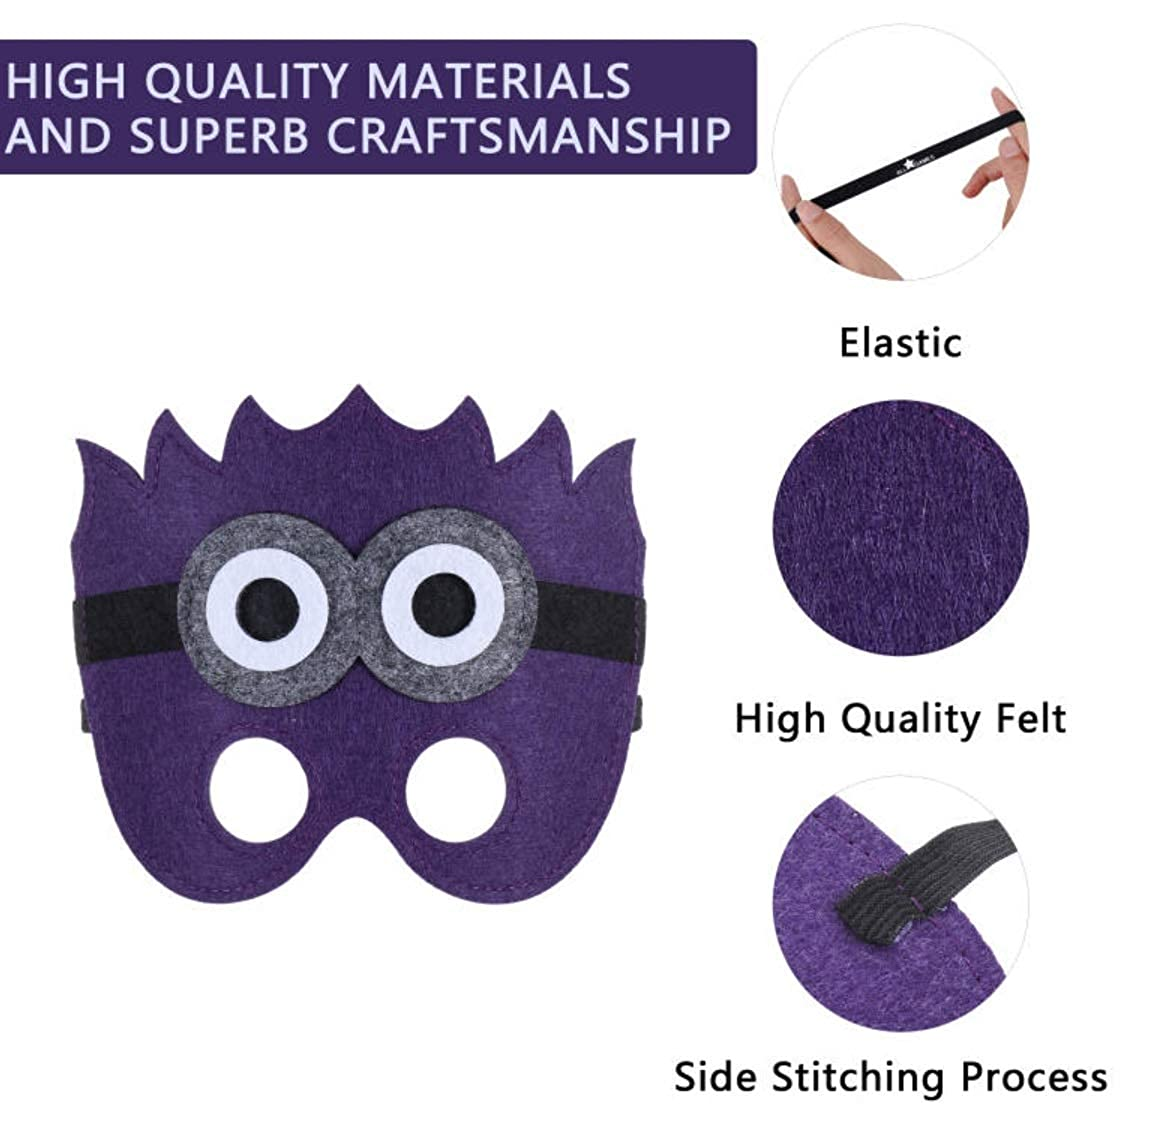 Gift One-Size-Fits-Most Design Premium Quality Eco-Felt and Fleece Cosplay! Comfortable Great for Birthday All Star Games Felt Masks for Minion Despicable Me Party 14 Masks Party Favor